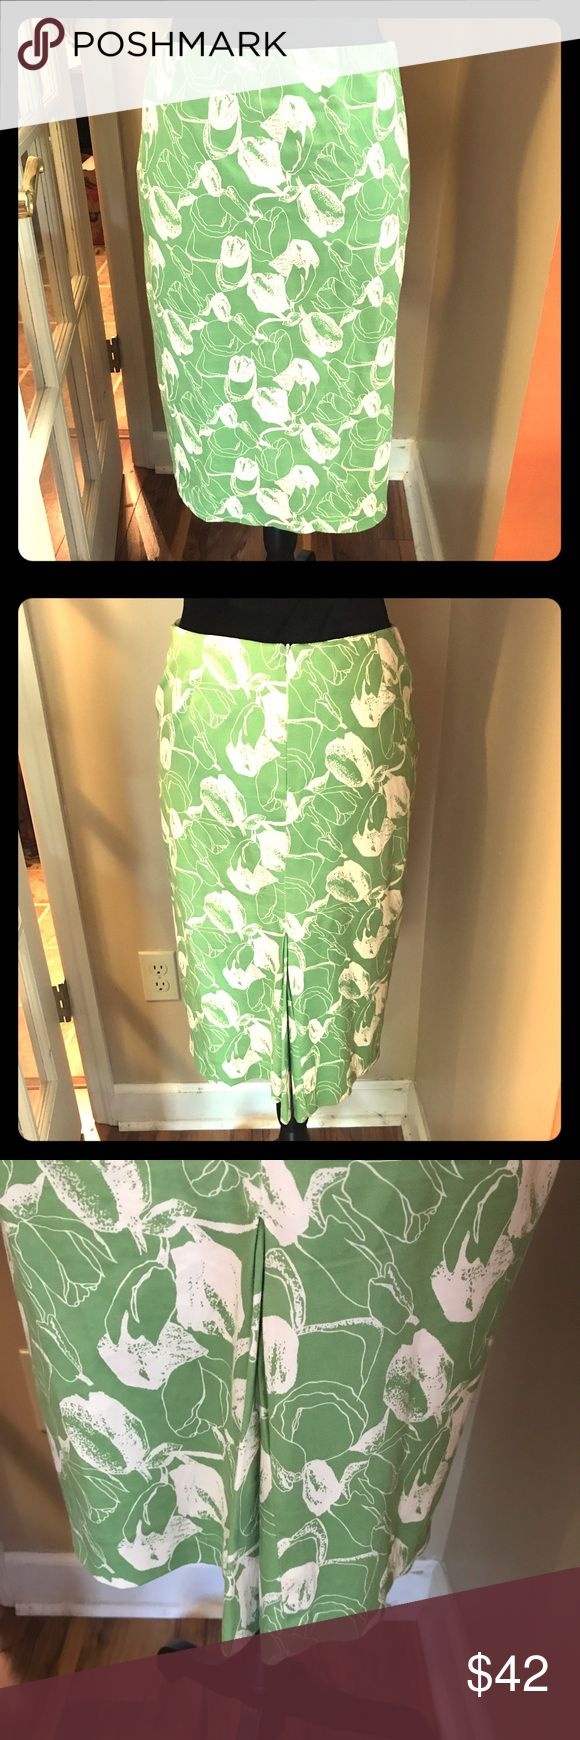 """Helen Wang New York skirt sz small Helen Wang New York skirt sz 2... gorgeous green & cream skirt ... back hidden zipper.. back kick pleat... unlined cotton & stretch.. Sz 2 but measures 14"""" across waist so depends so sue depends on where you want the waist to sit... if you wear a size 4 or 6 this is perfect.... length 23"""" in my opinion this skirt runs large for a size 2 ... Has been gently worn once... ' though tag says dry clean only I washed in cold water & drip dried & it is still…"""